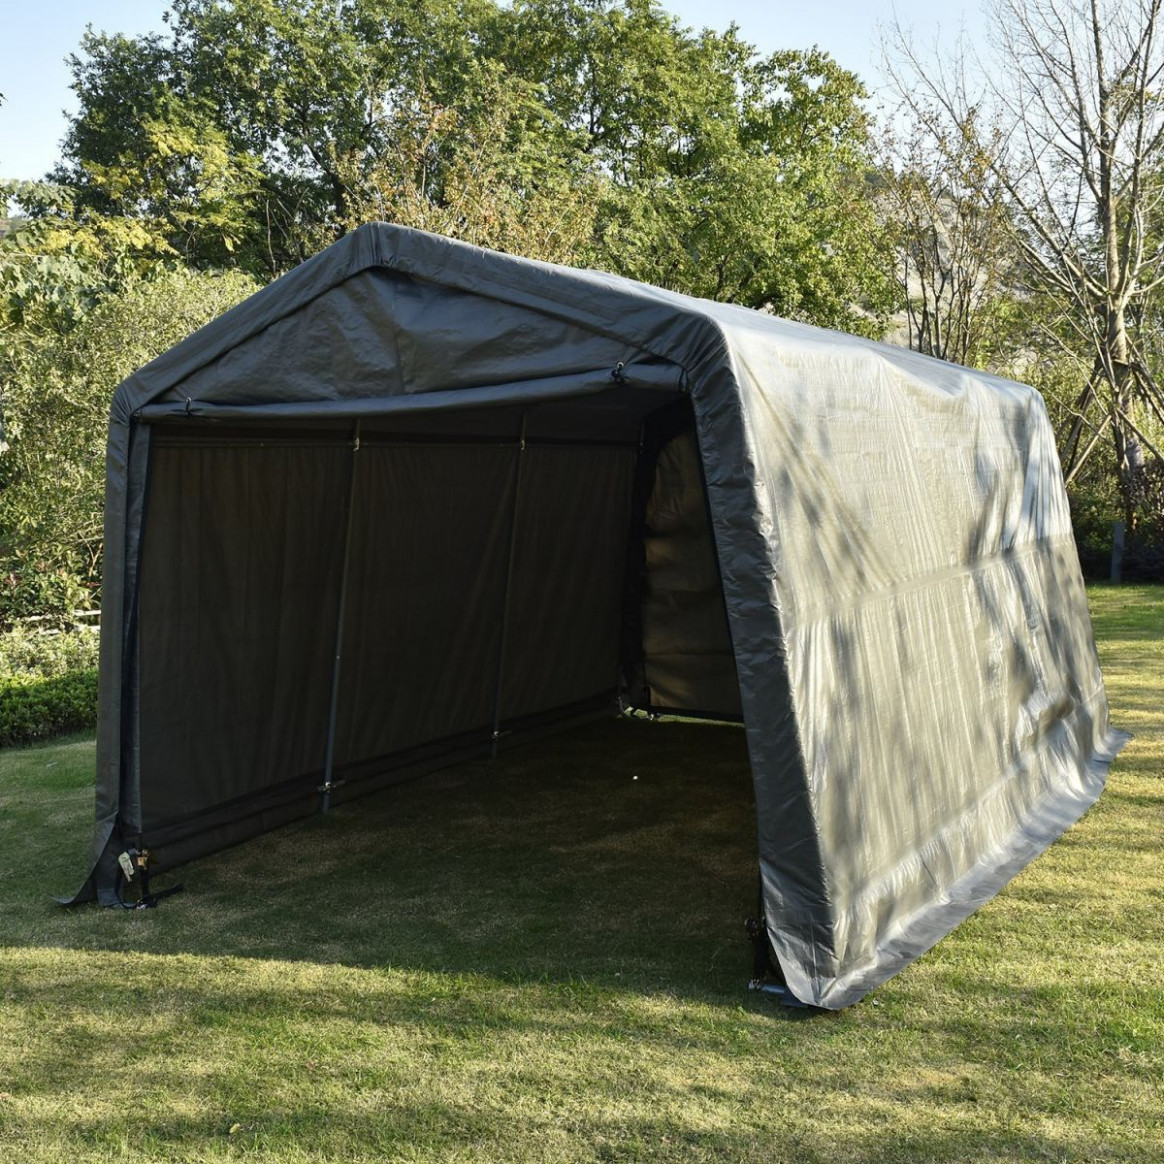 11 Portable Carport Shelters To Take Care Of Your Car Carport Canopy Anchors